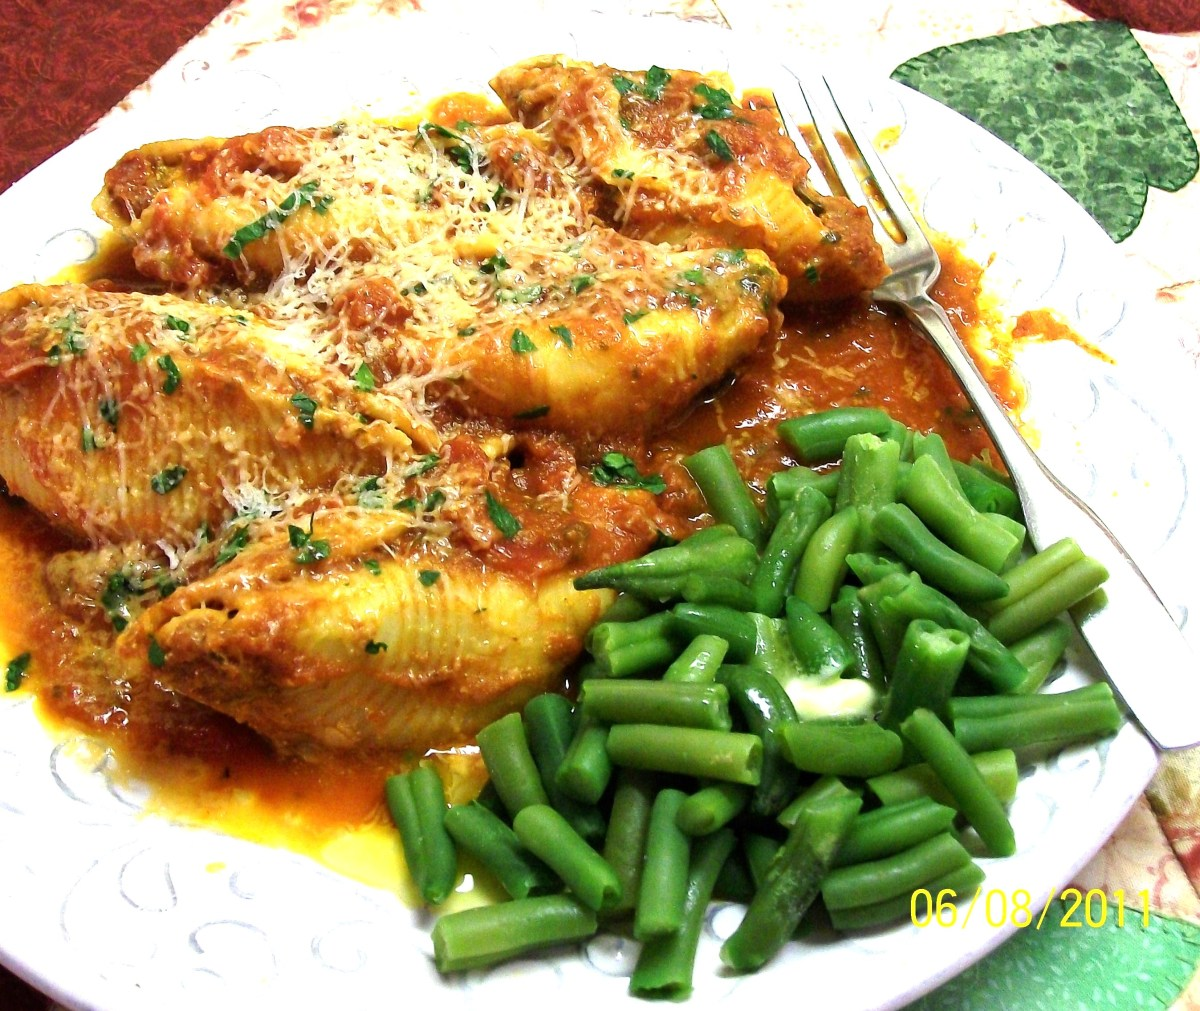 Stuffed Shells Florentine - Cook in Oven - OR - Outside on Your Grill !